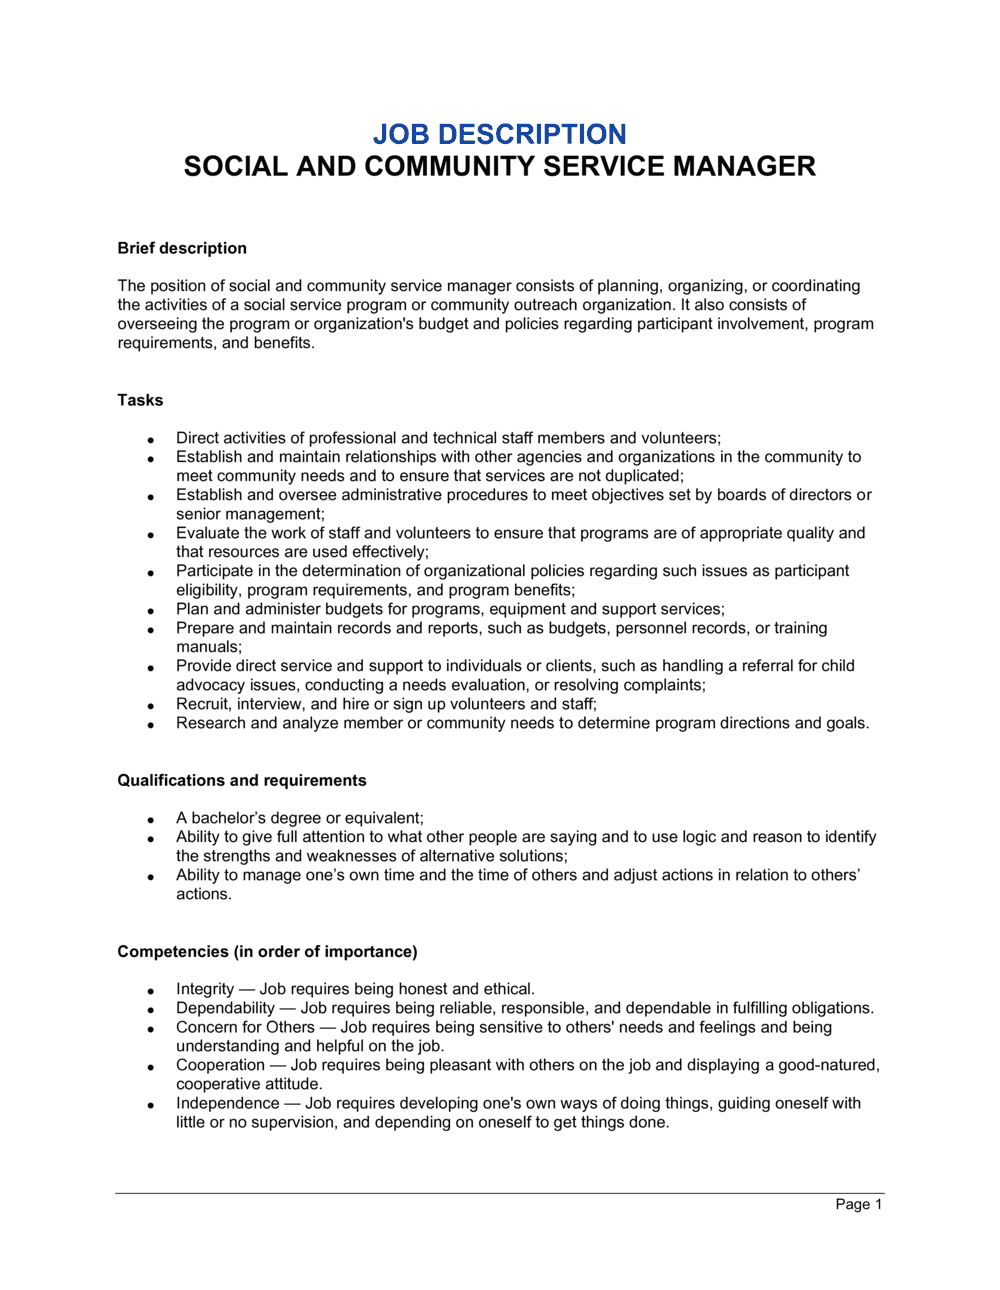 Business-in-a-Box's Social and Community Service Manager Job Description Template